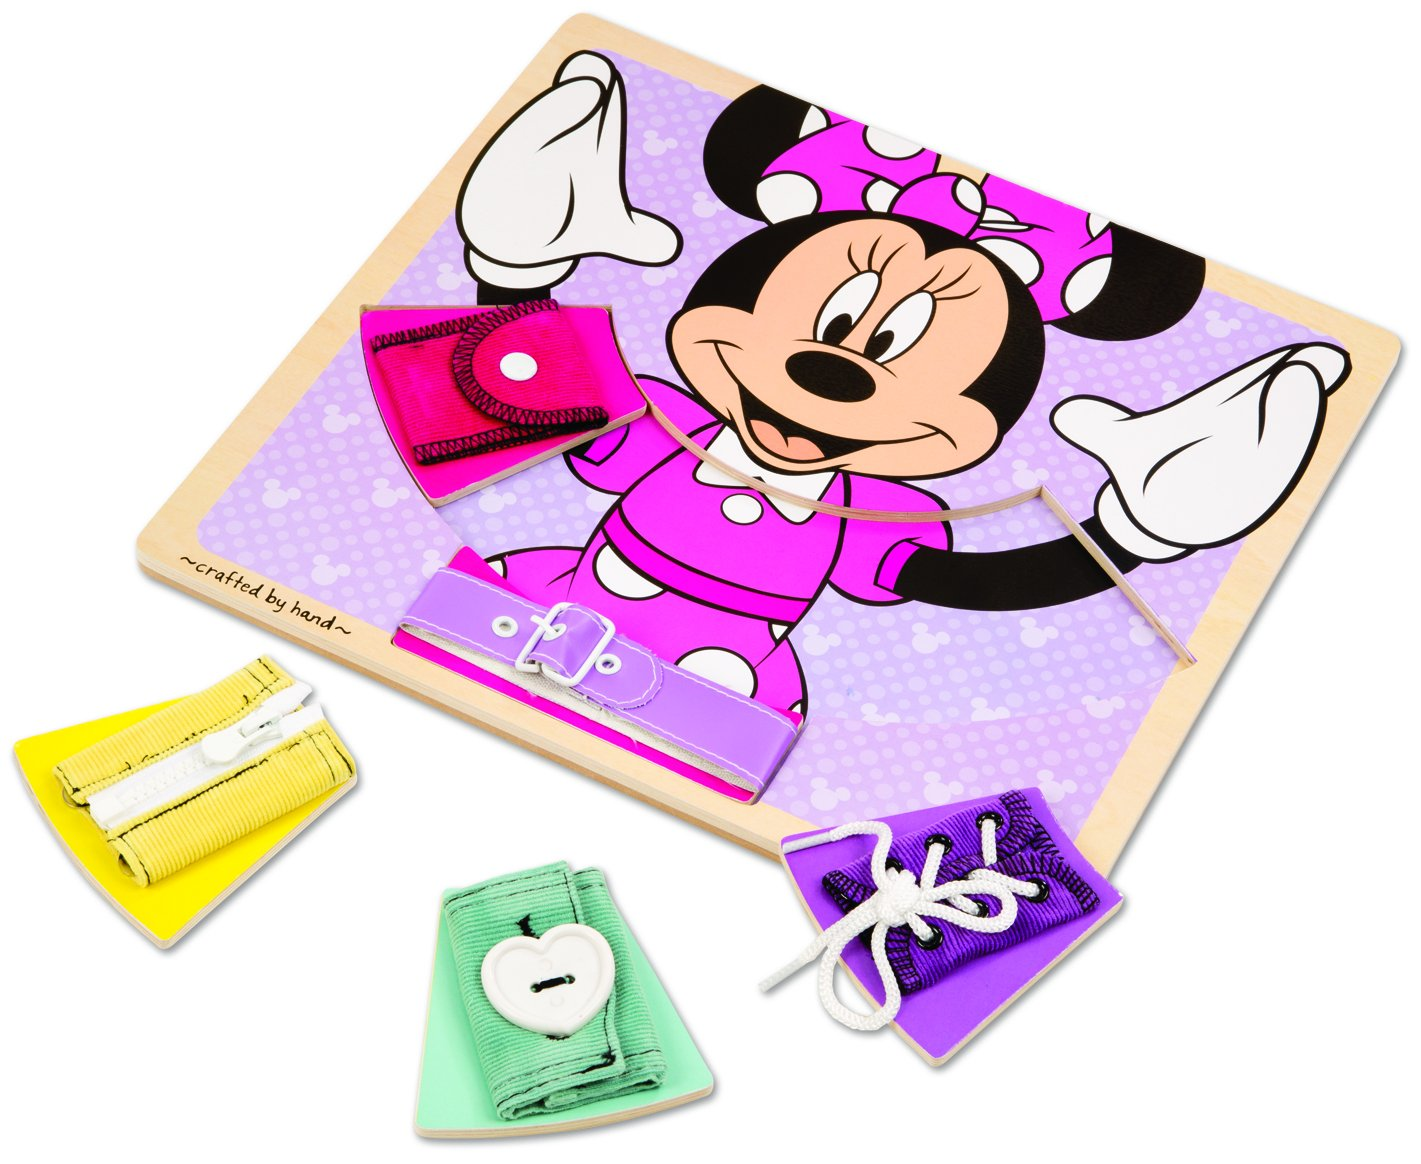 Melissa Doug Disney Minnie Mouse Wooden Basic Skills Board Zip Lace Tie Buckle Button and Snap